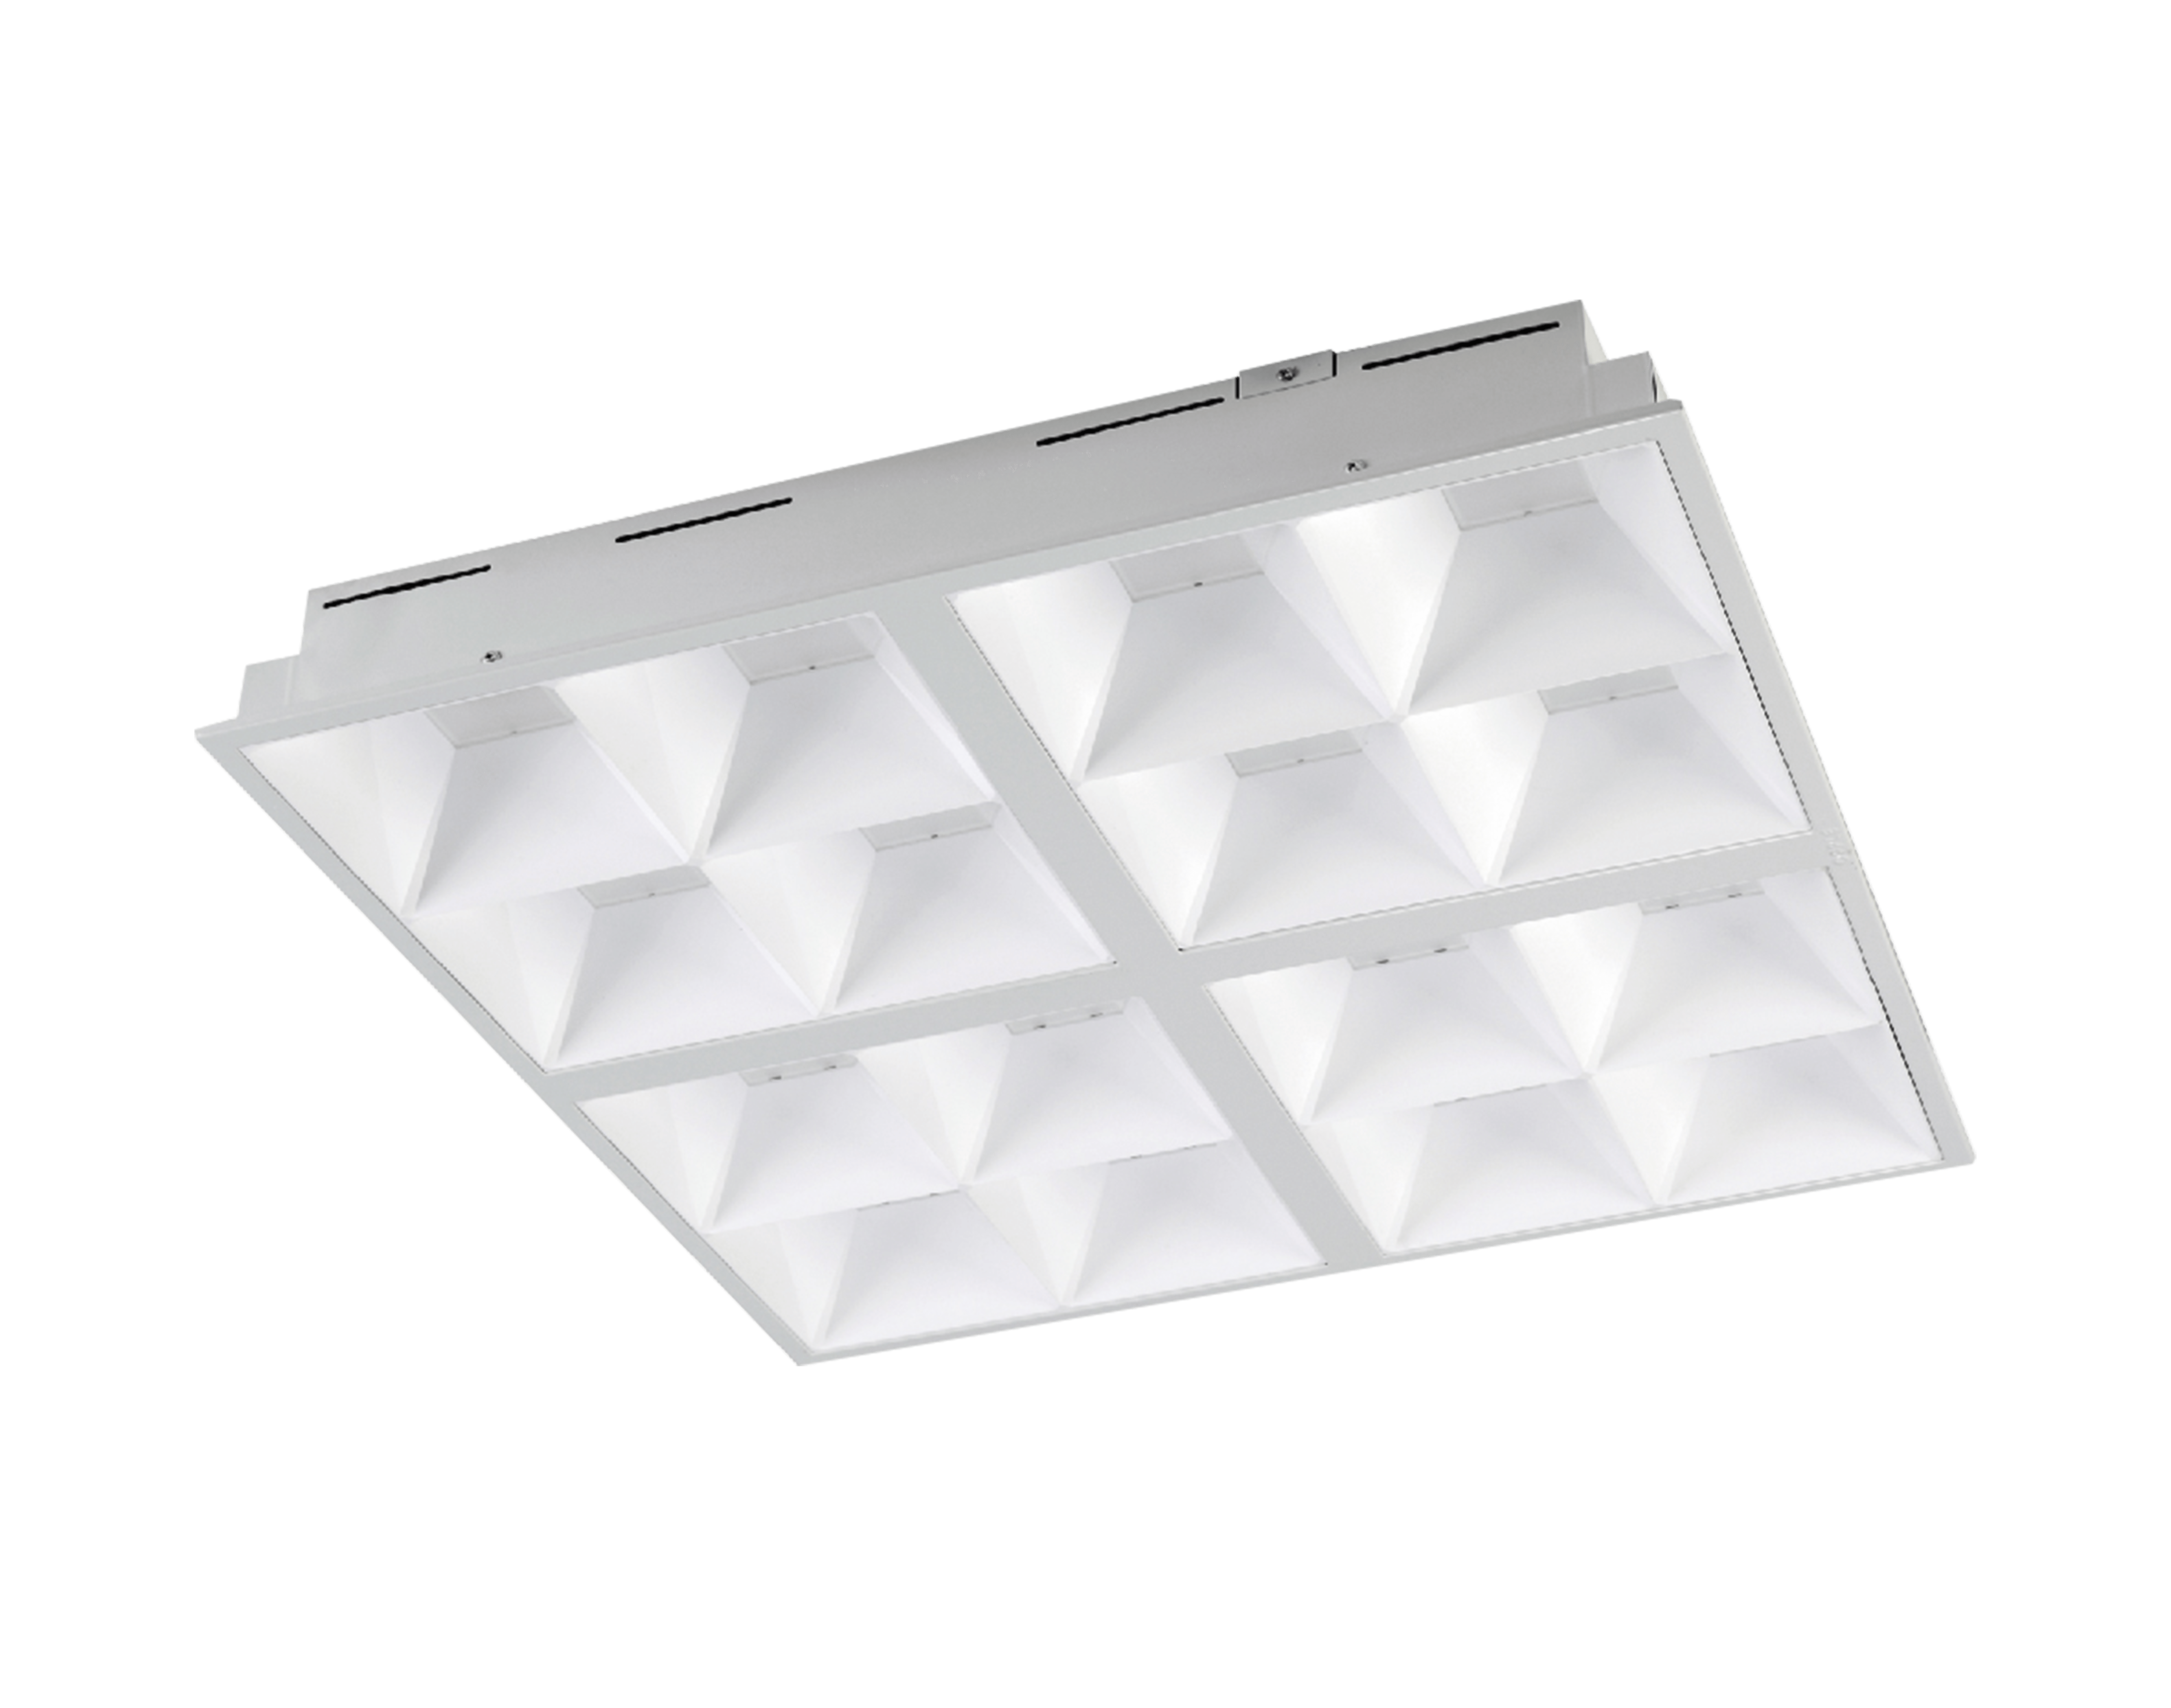 Direct replacement for existing t5 and t8 fixtures comfortable lighting